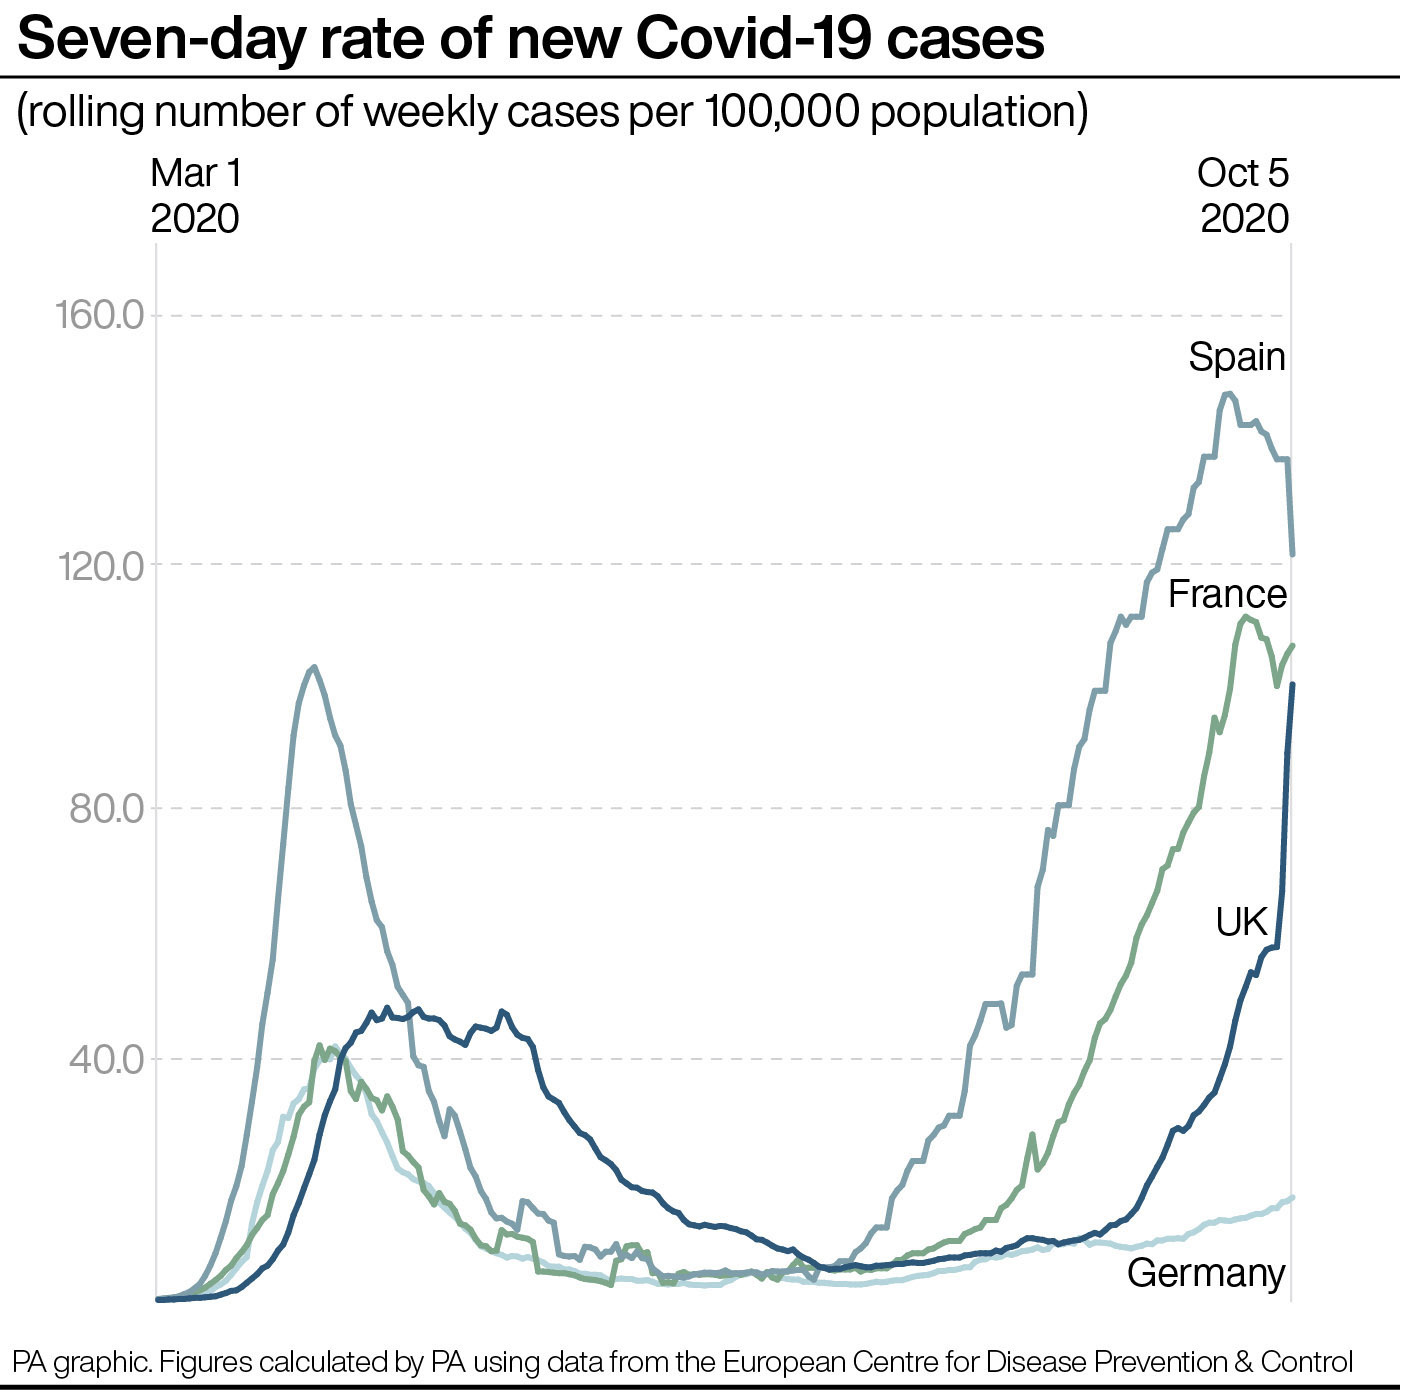 Herd Immunity Against Coronavirus Can Be Obtained If Only 3-10% of Population Gets Infected, Say Russian Scientists